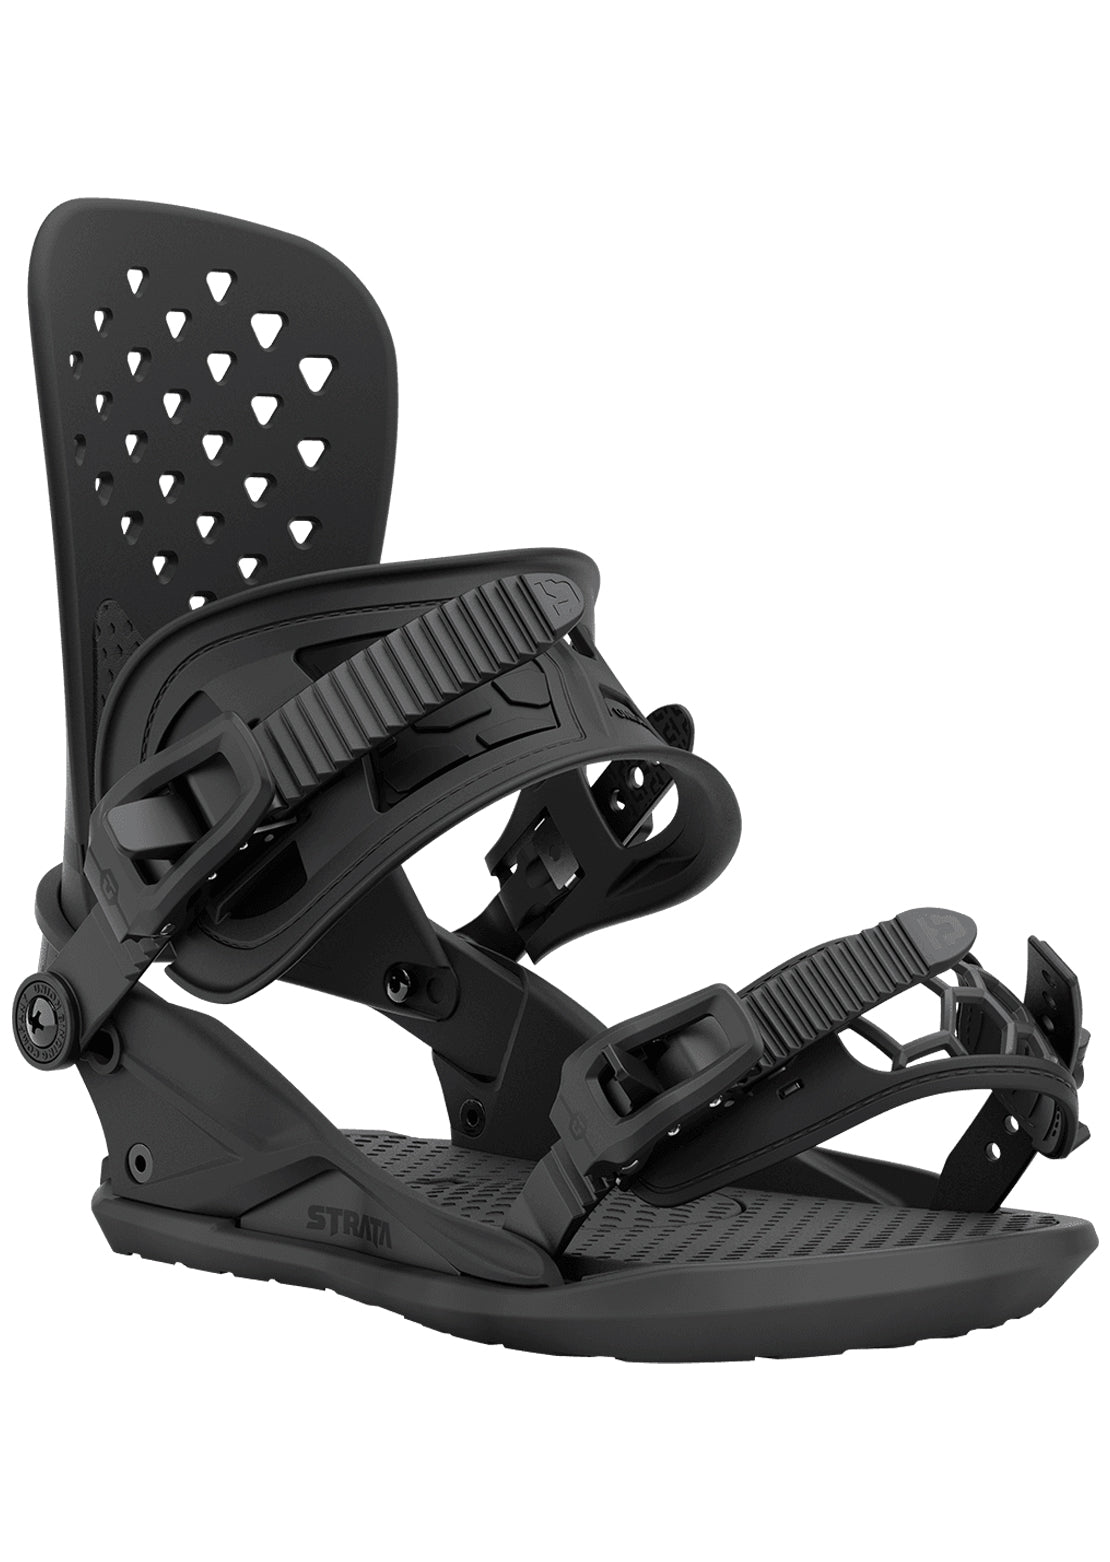 Union Men's Strata Snowboard Bindings Black